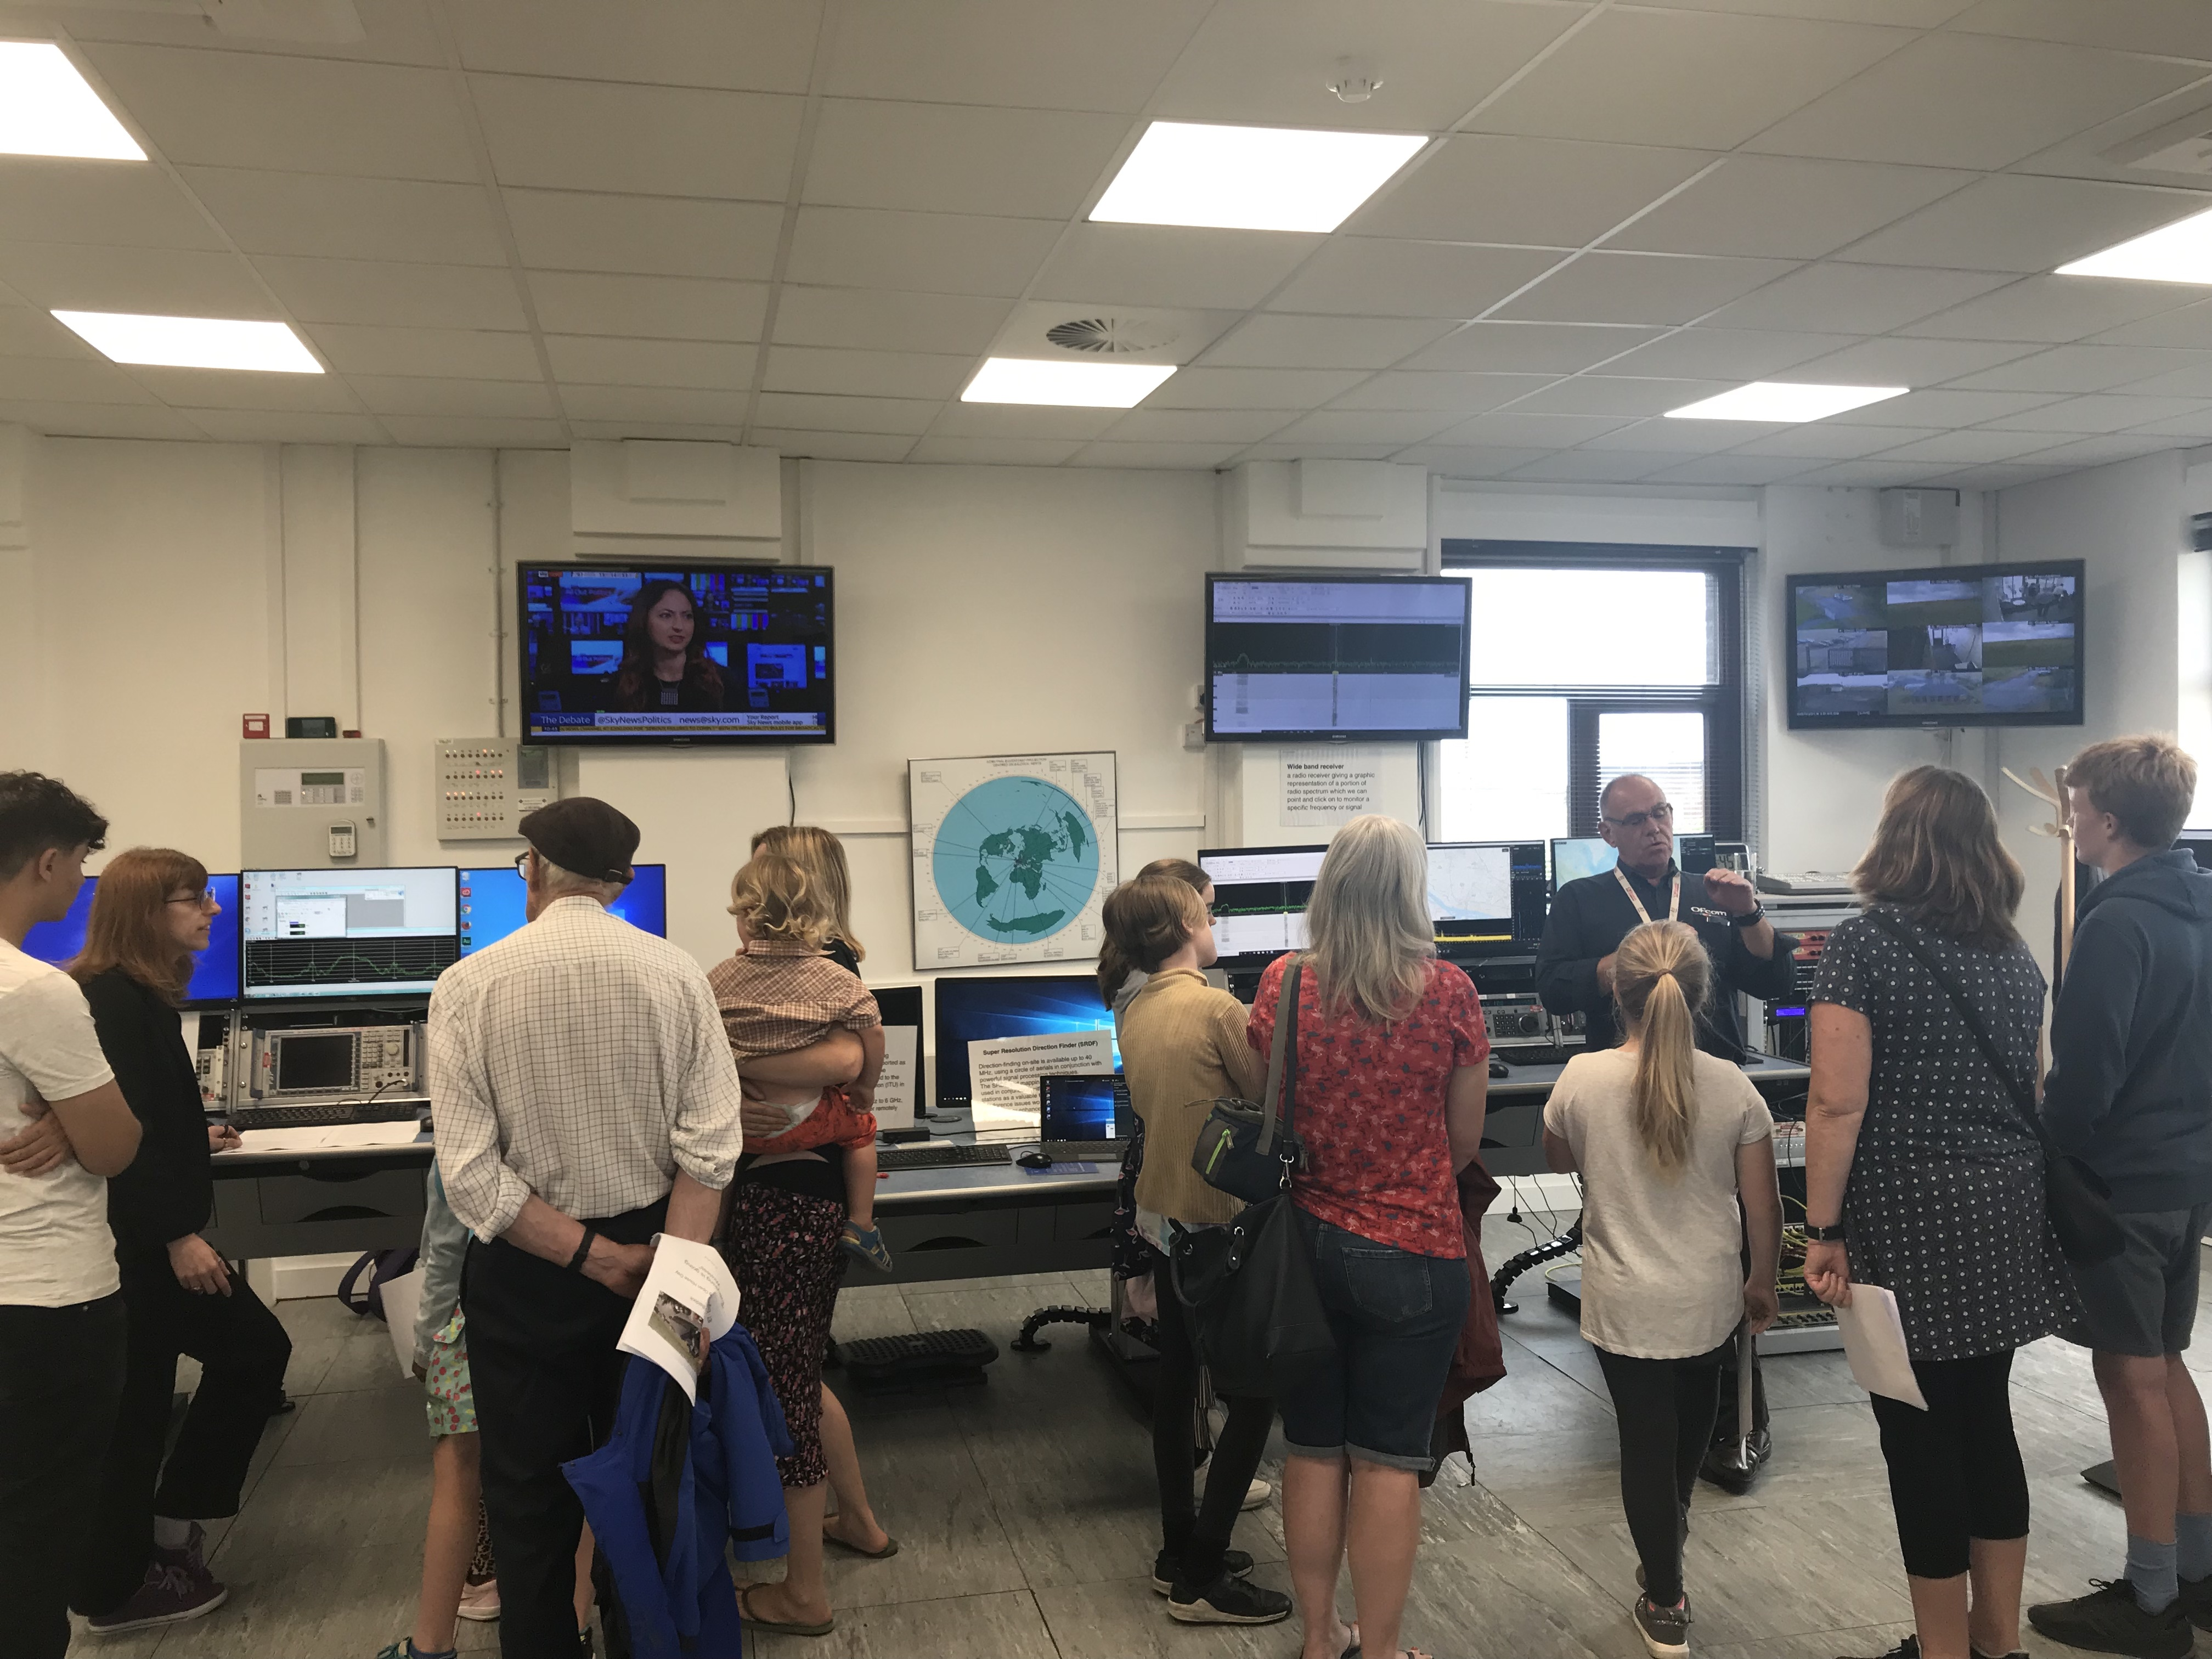 Attendees are given an introduction to Baldock's monitoring work